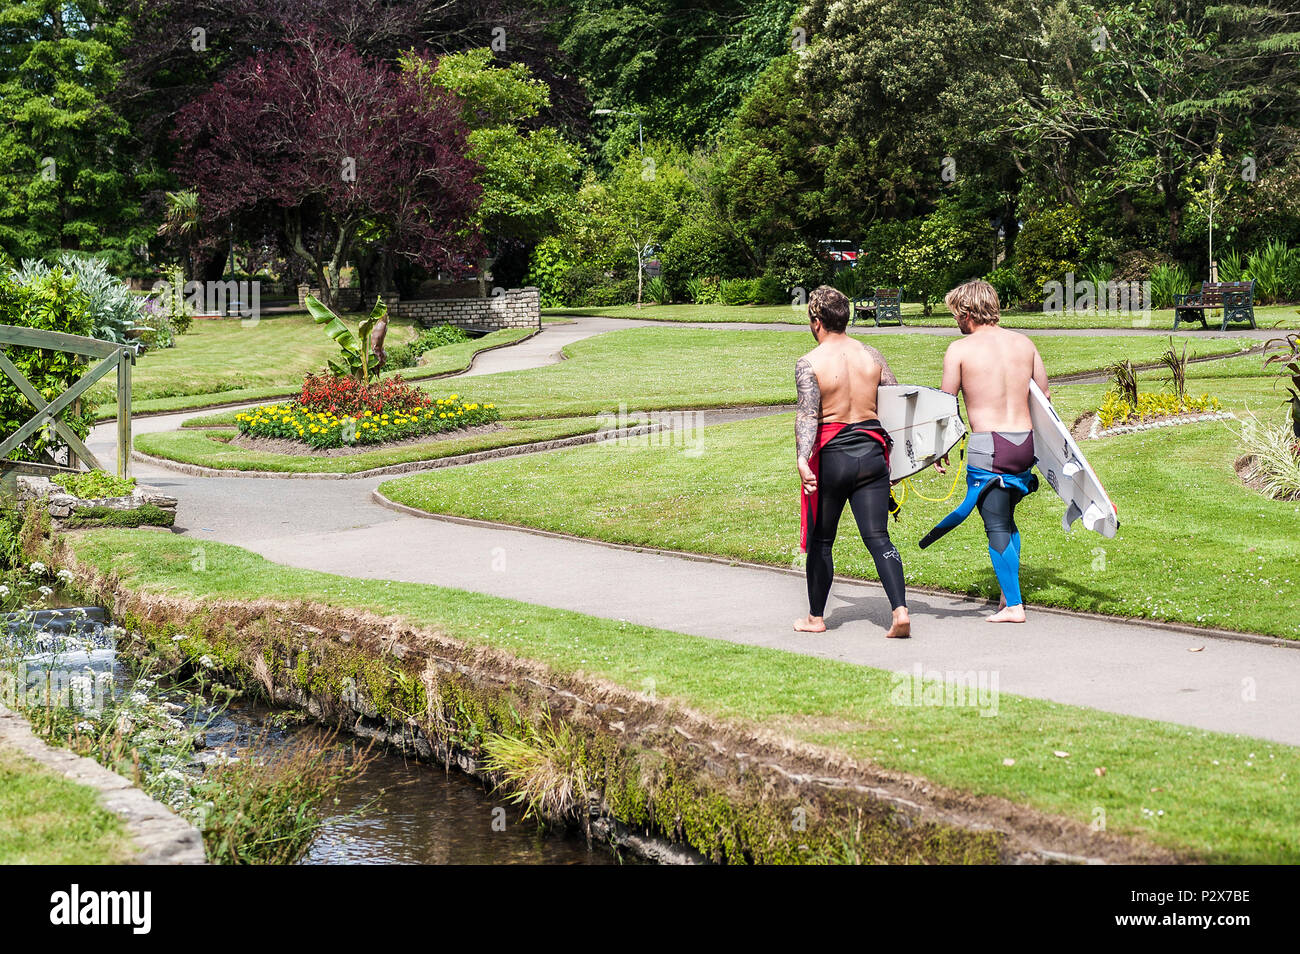 Two surfers carrying their surfboards and walking through a landscaped garden in Newquay in Cornwall. - Stock Image